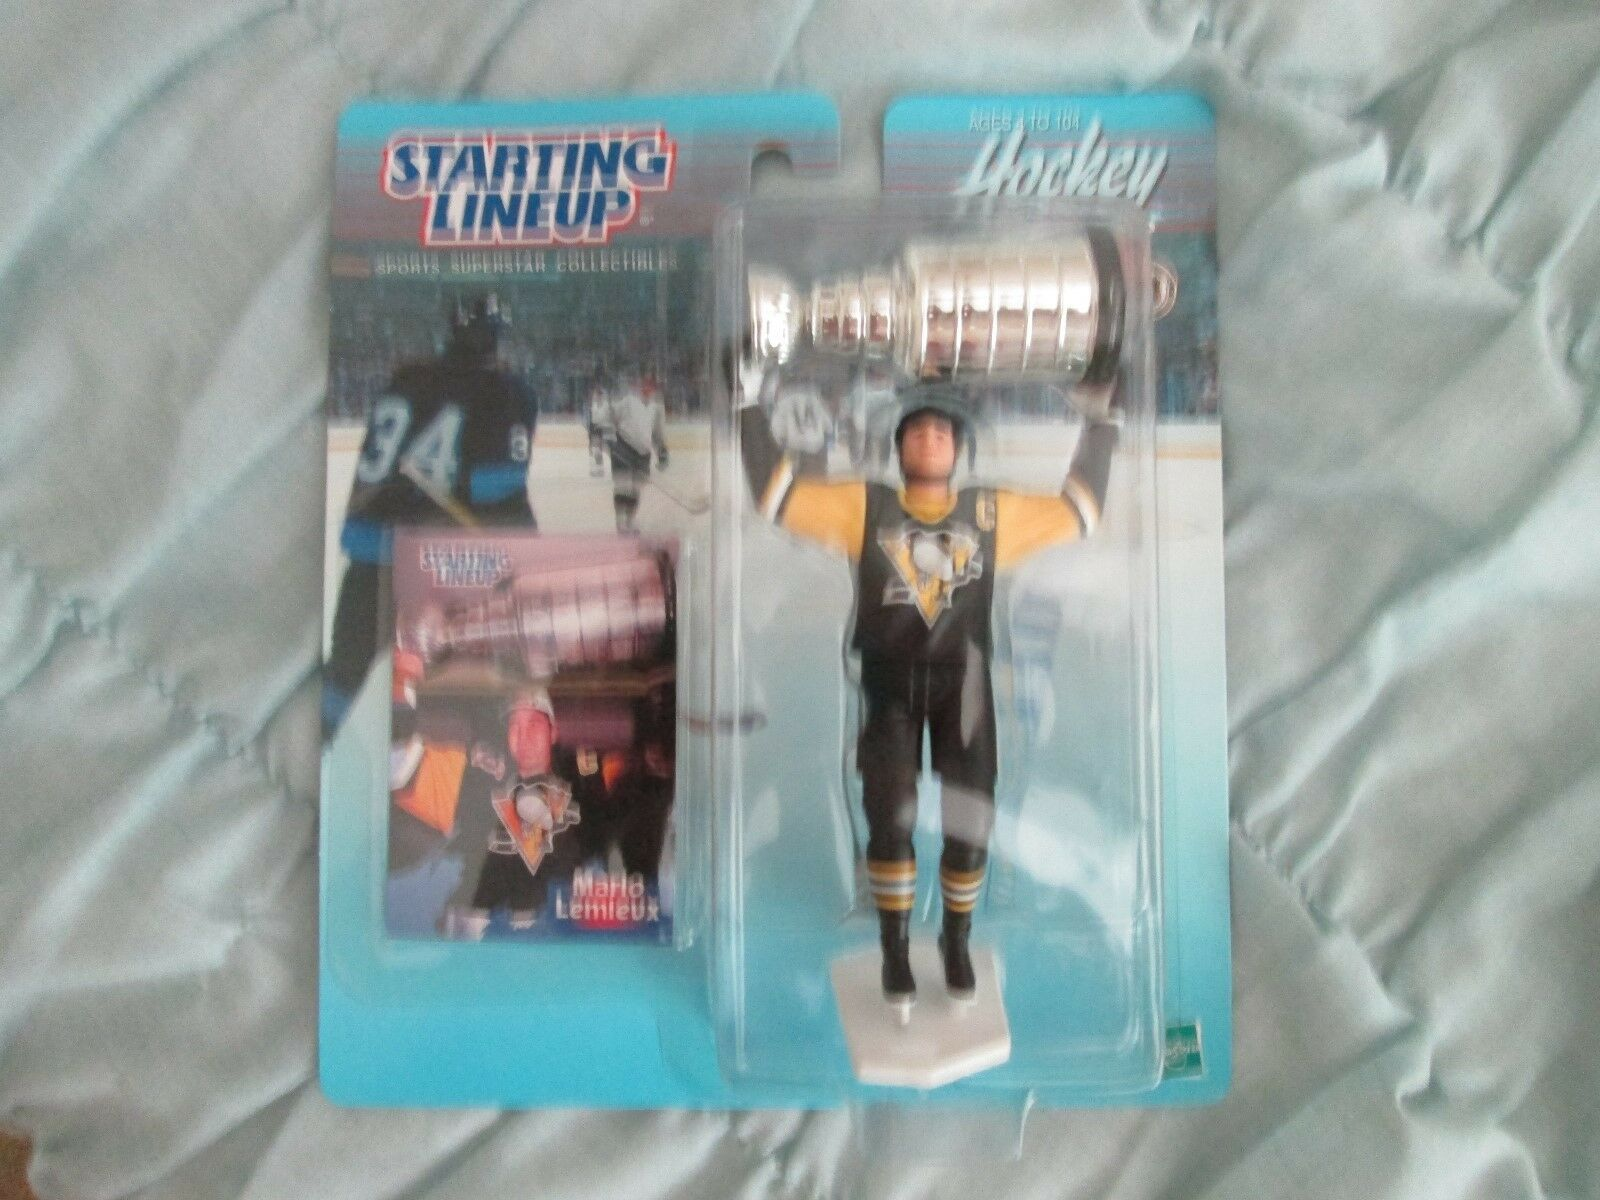 1999 Starting Lineup NHL Sports Superstar Collection Mario Lemieux NIP